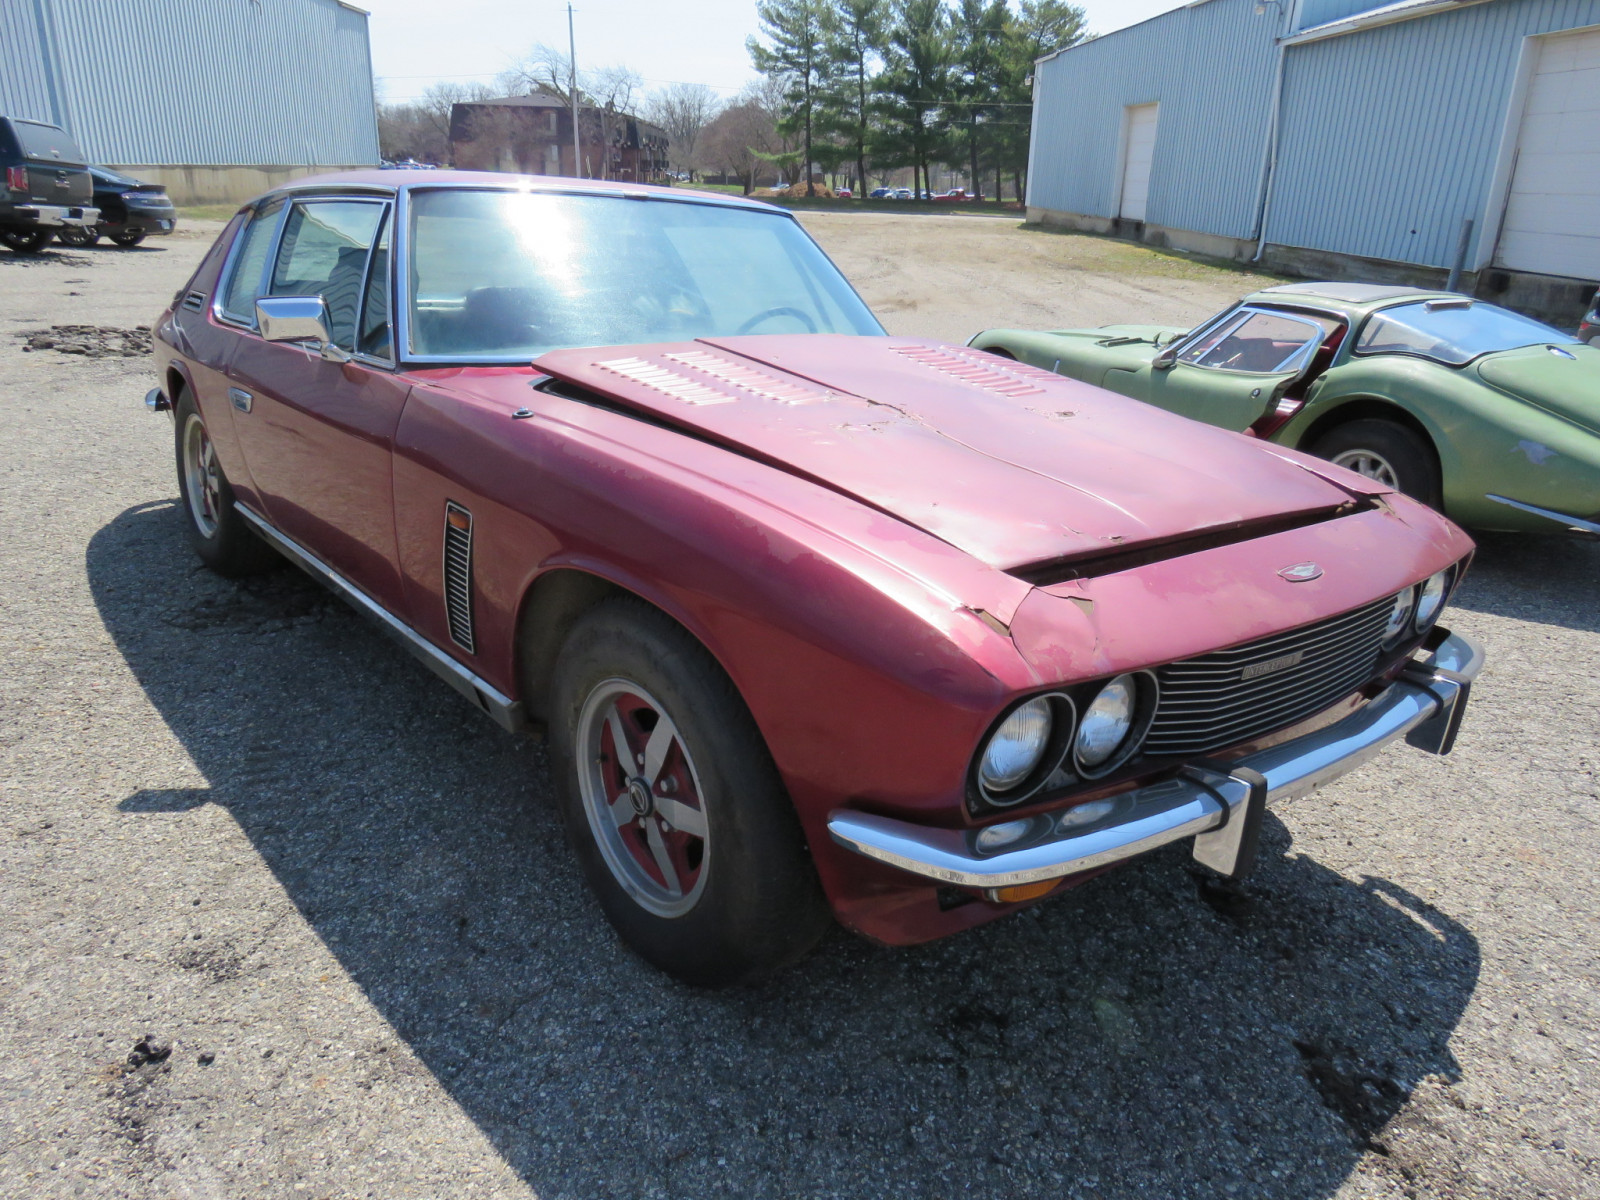 1974 Jensen Interceptor II 2dr Sedan - Image 4